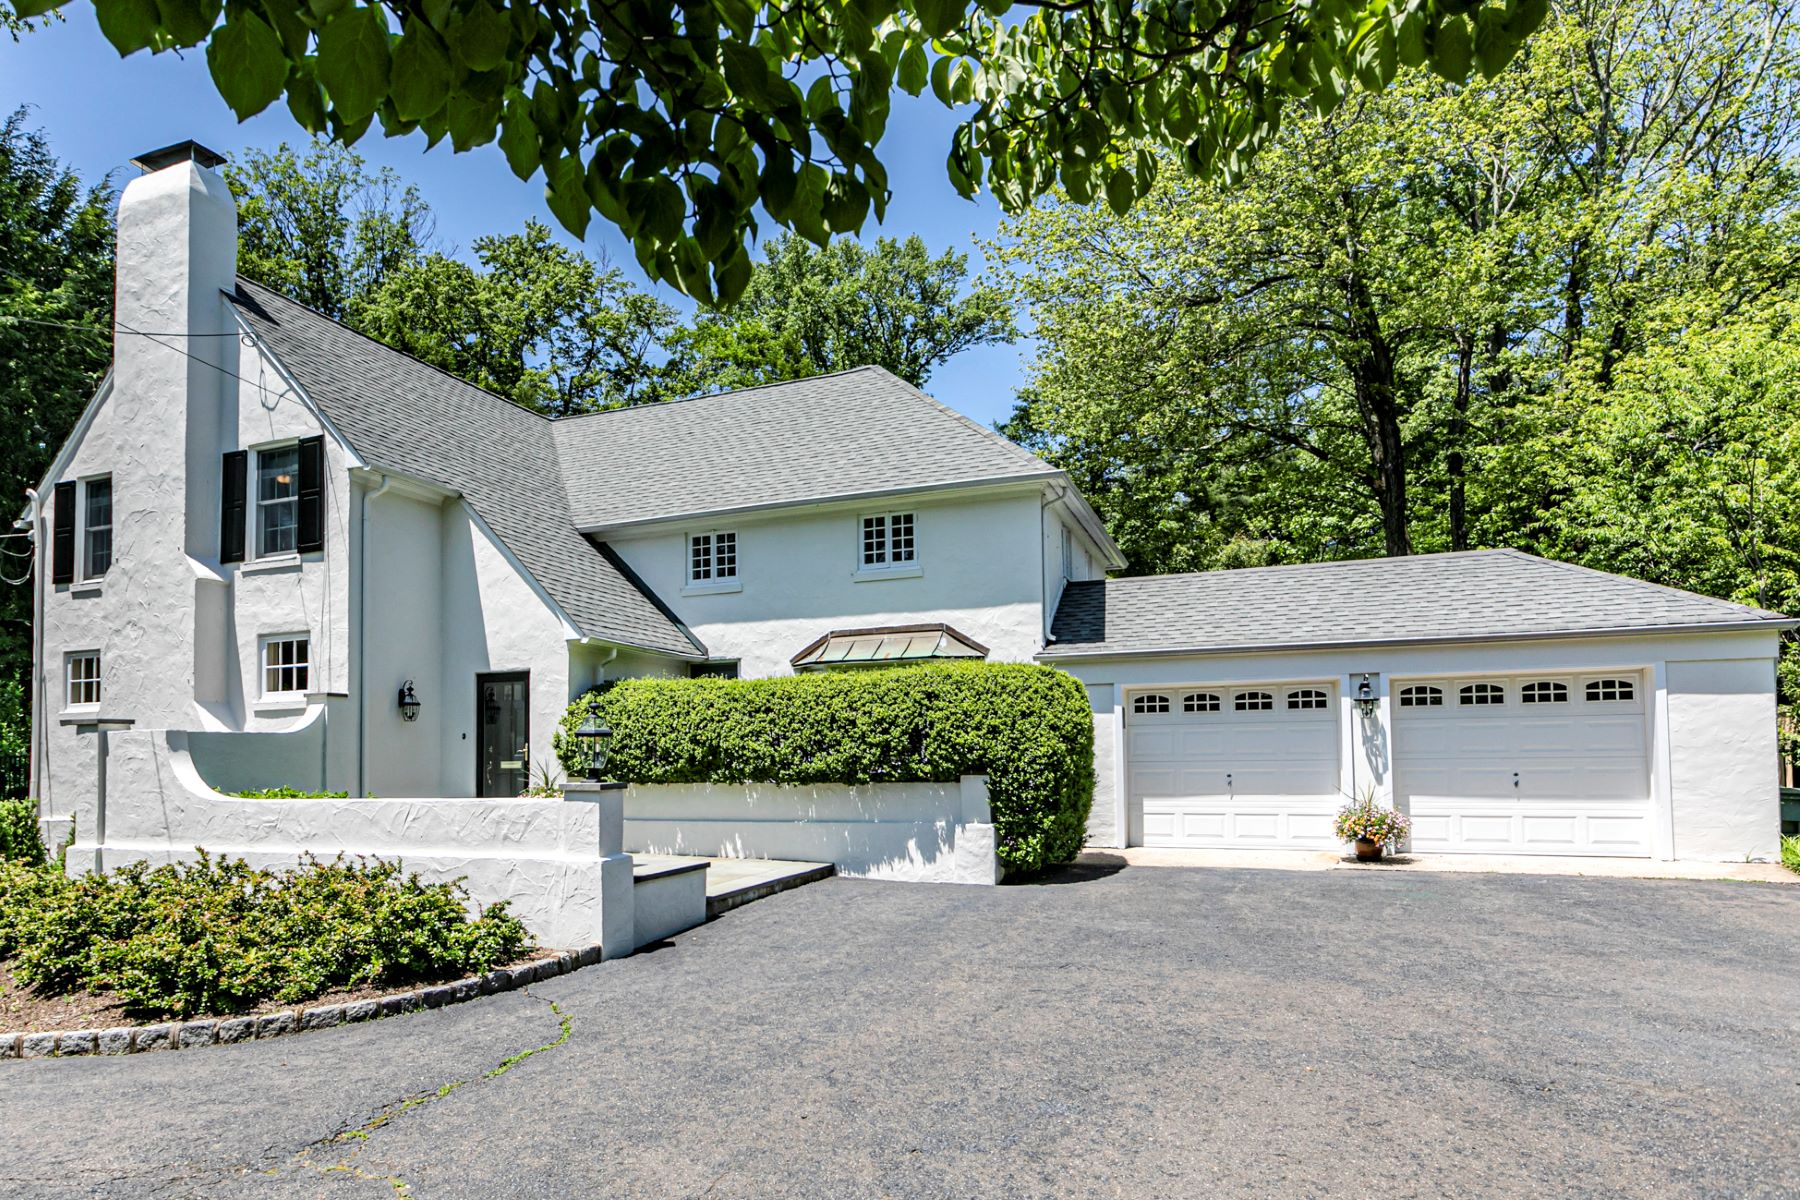 Single Family Homes for Sale at The Perfect Period Home Exactly One Mile From Town 9 Ober Road, Princeton, New Jersey 08540 United States